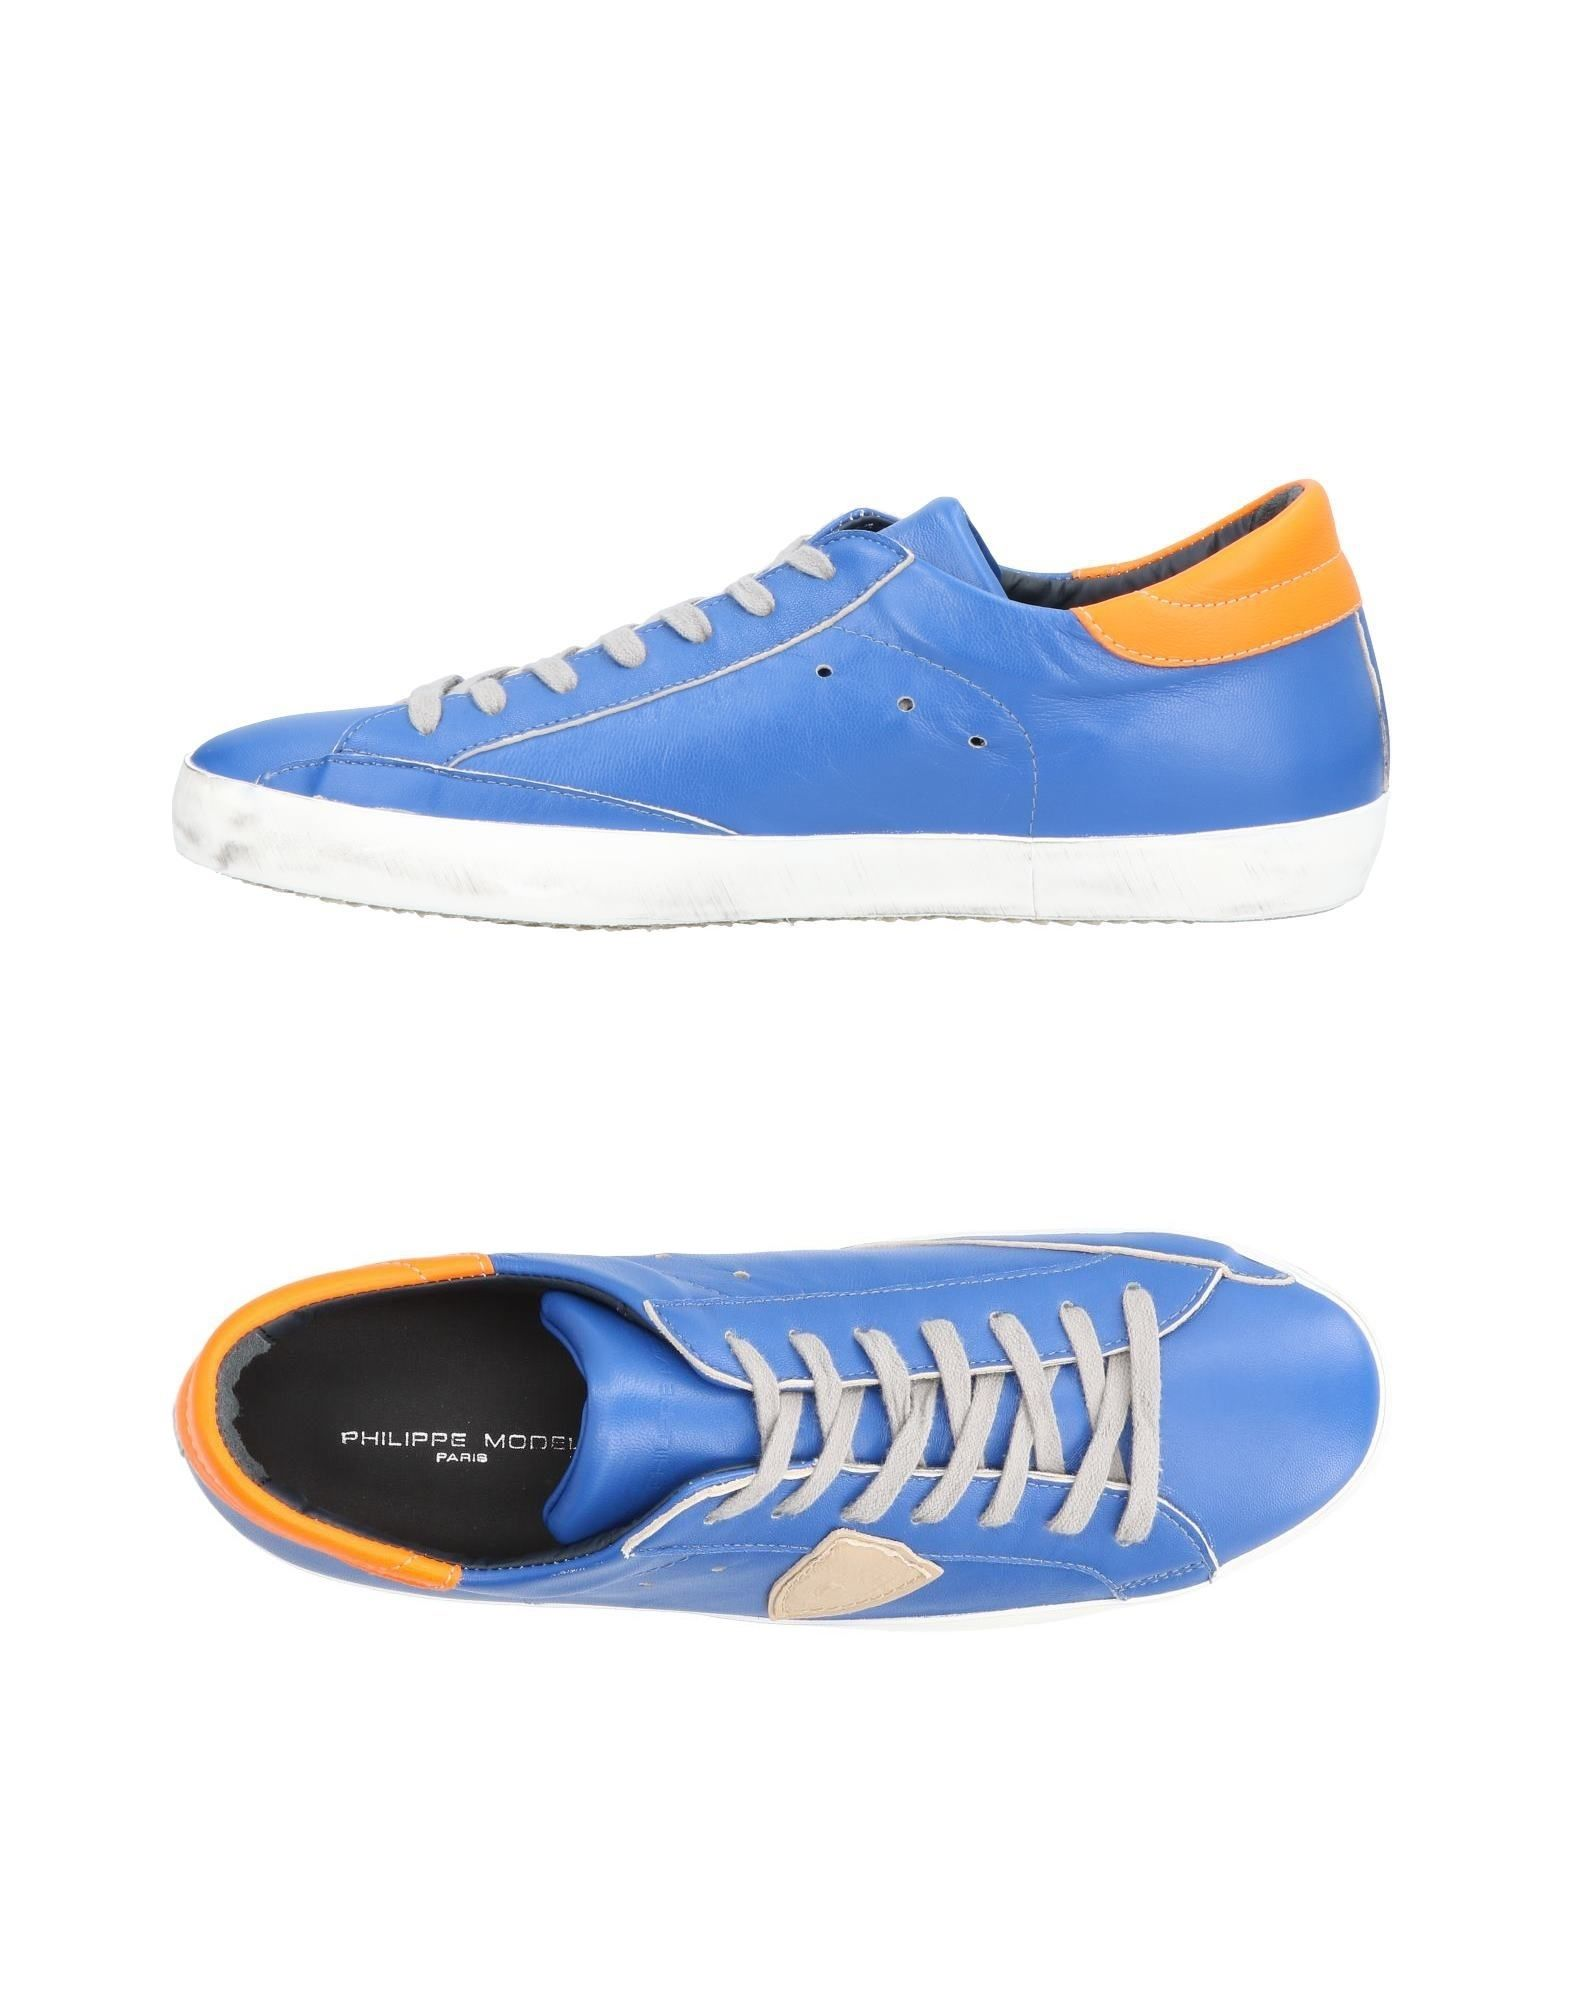 Philippe on Model Sneakers - Men Philippe Model Sneakers online on Philippe  Australia - 11456243BK a0c43c